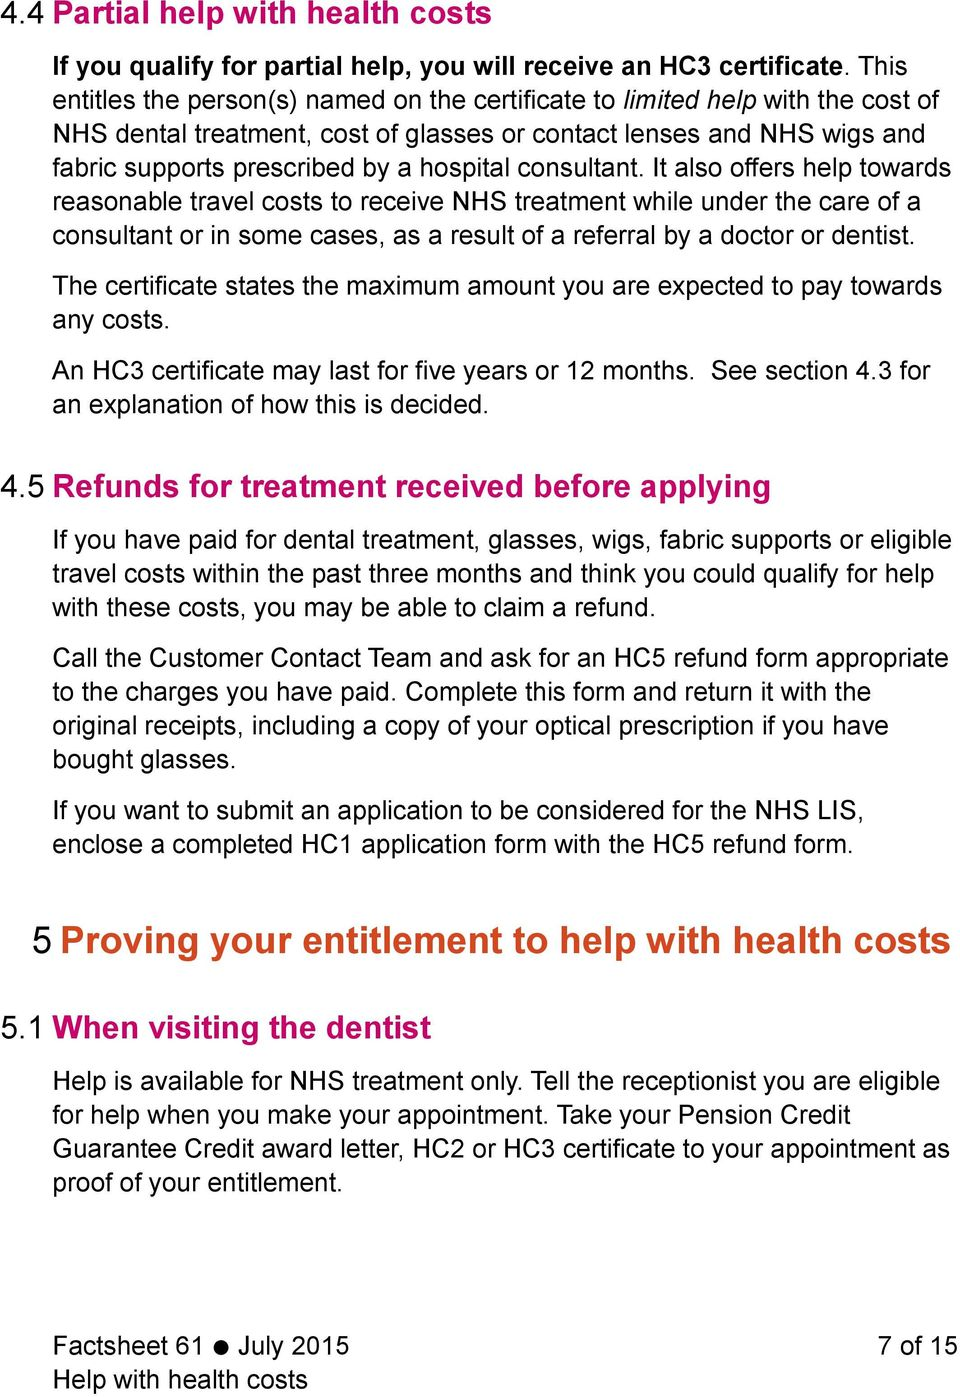 consultant. It also offers help towards reasonable travel costs to receive NHS treatment while under the care of a consultant or in some cases, as a result of a referral by a doctor or dentist.